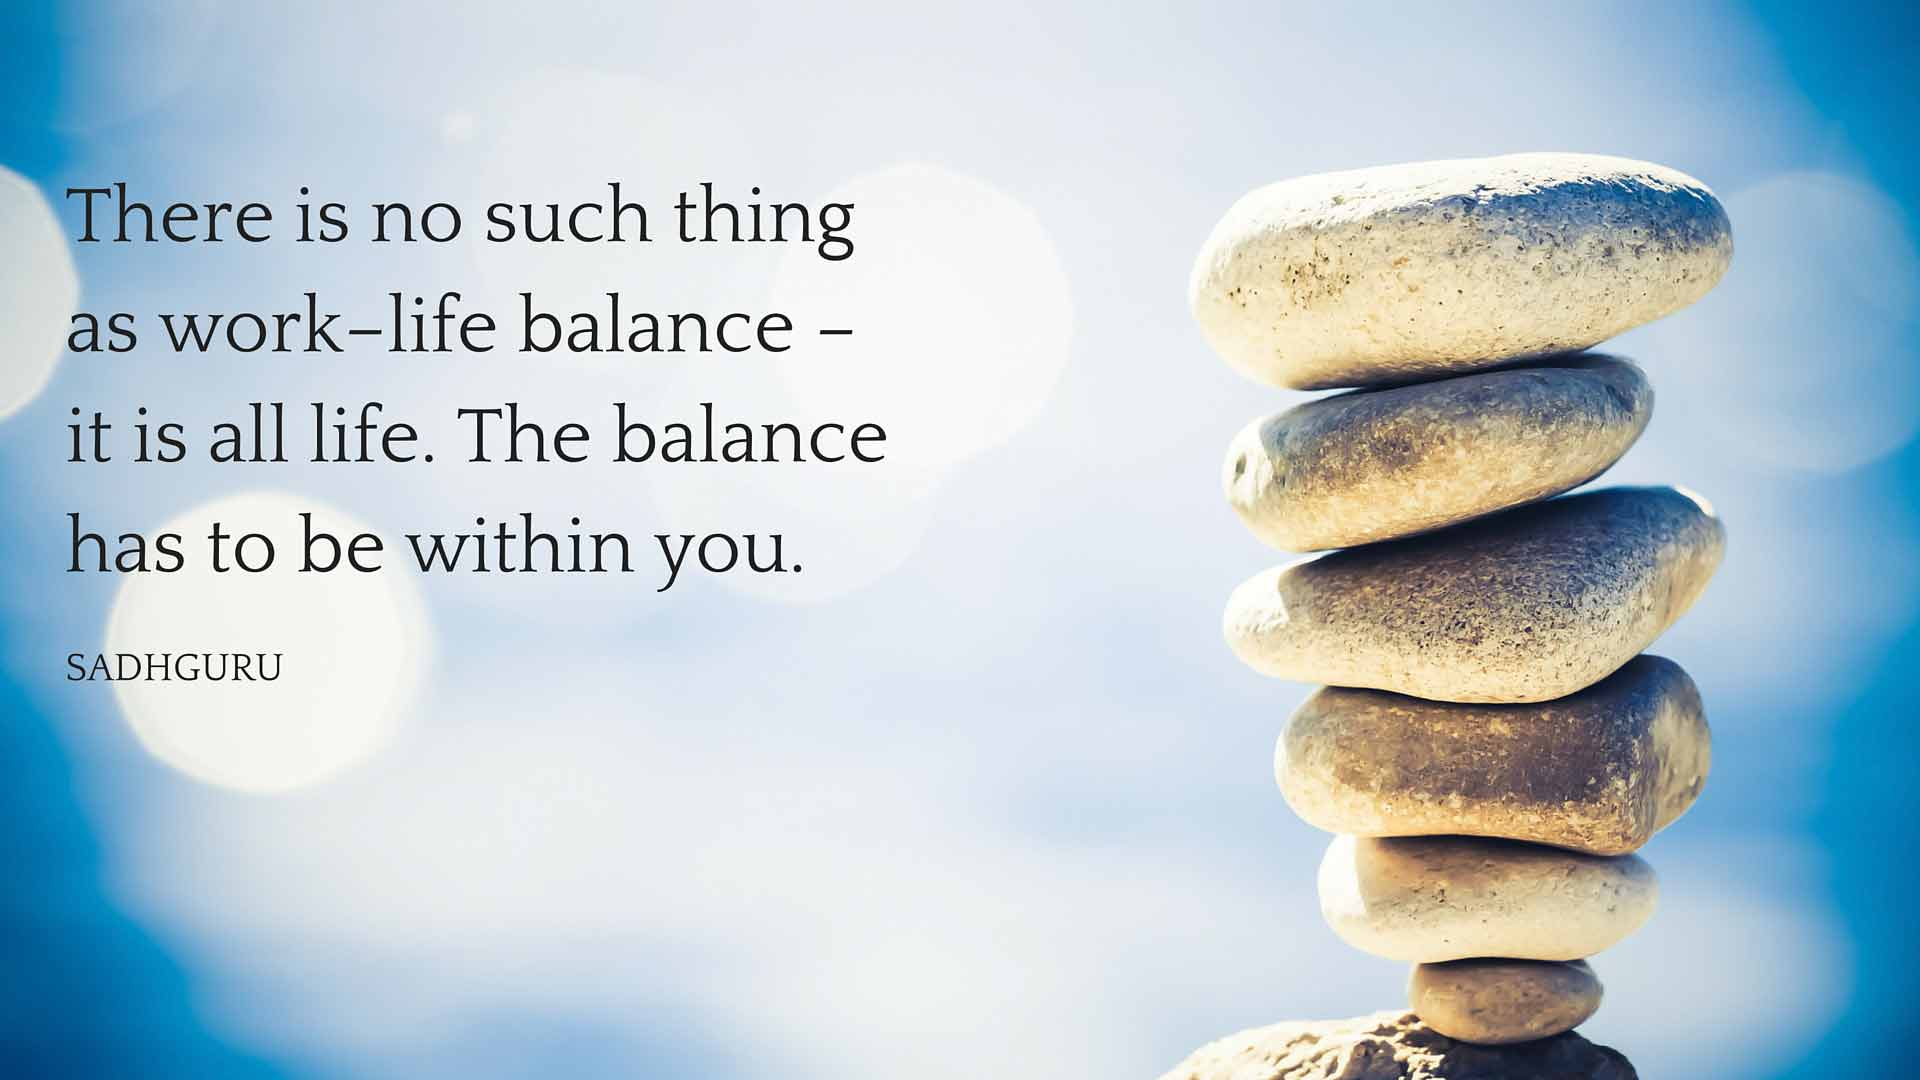 Sadhguru's Quotes on Work, Life & Balance - The Isha Blog